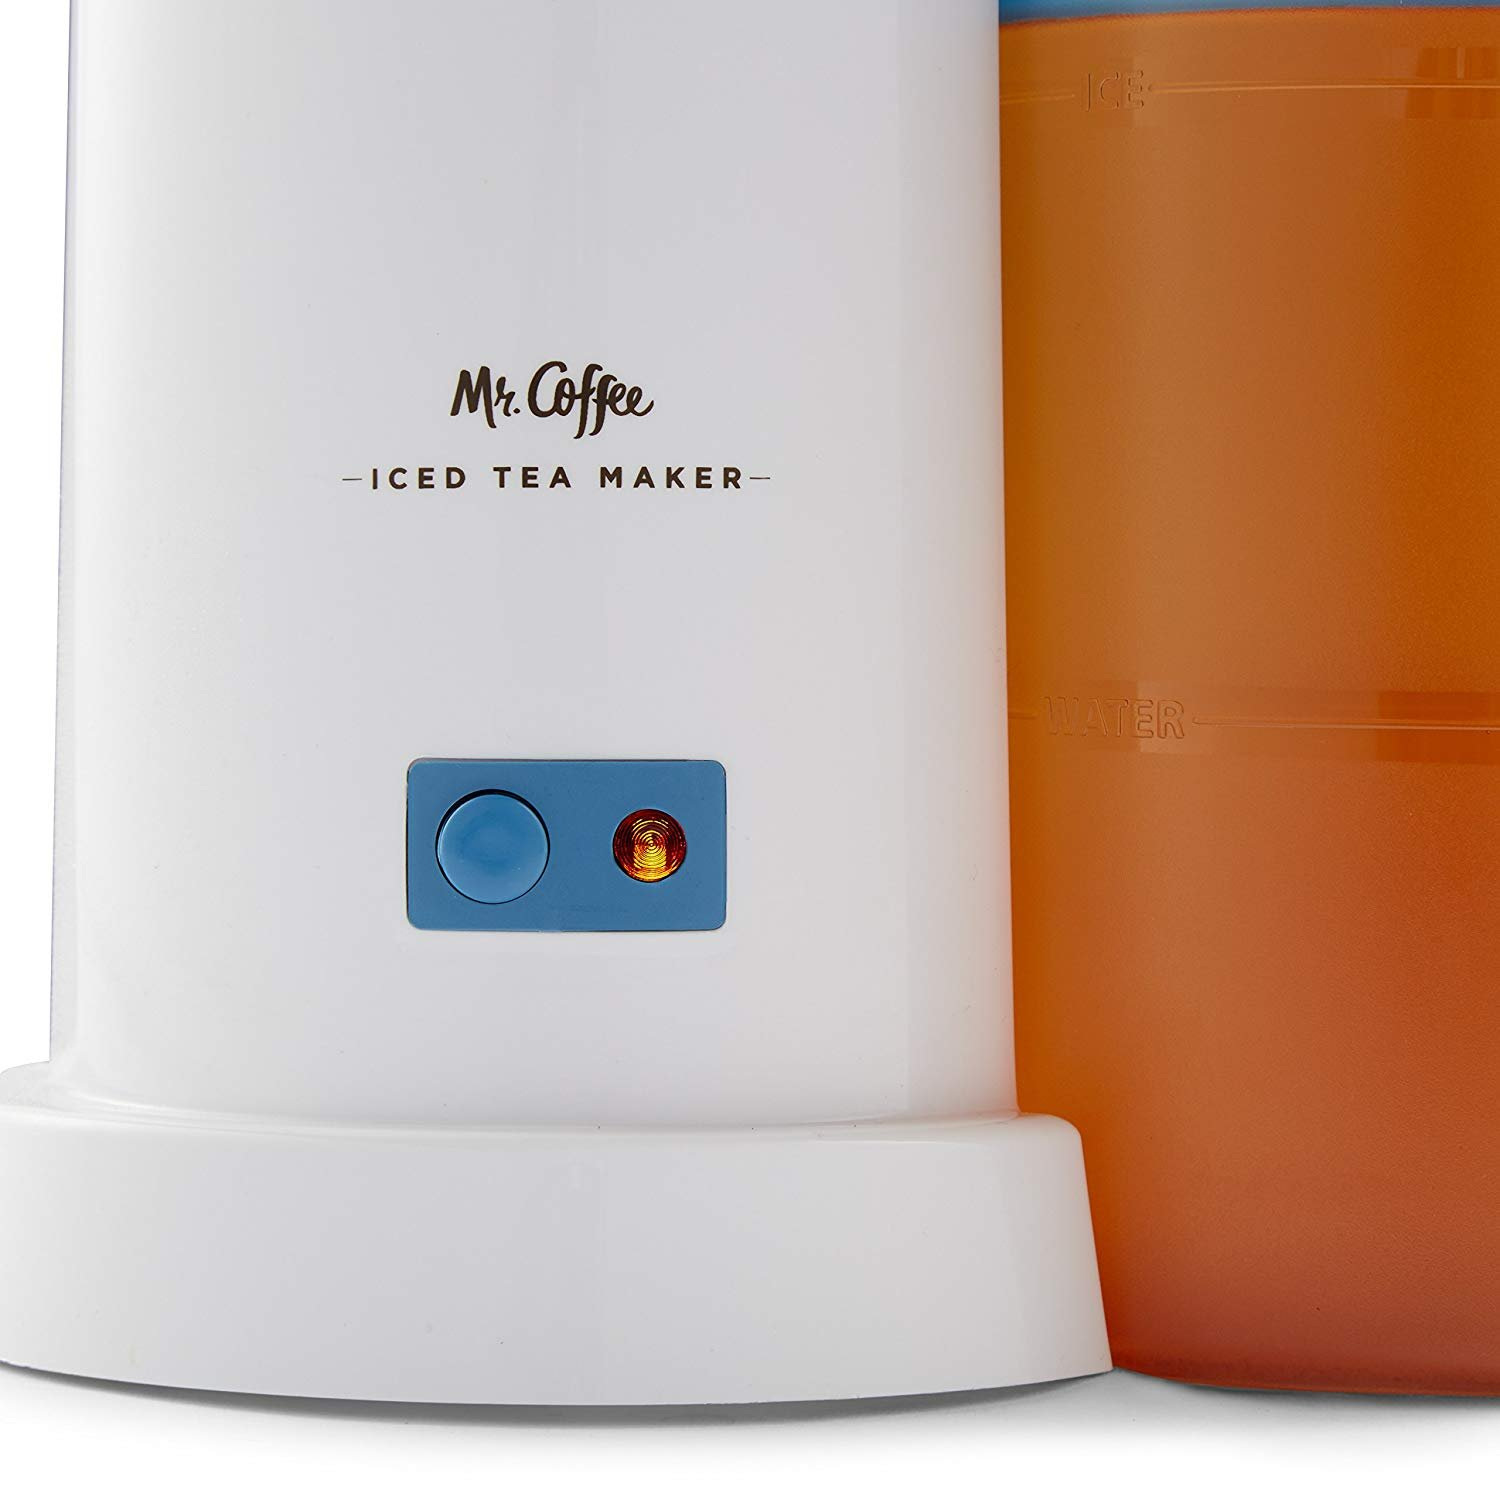 TM1 2-Quart Iced Tea Maker for Loose or Bagged Tea, Blue by Mr. Coffee. (Image #4)